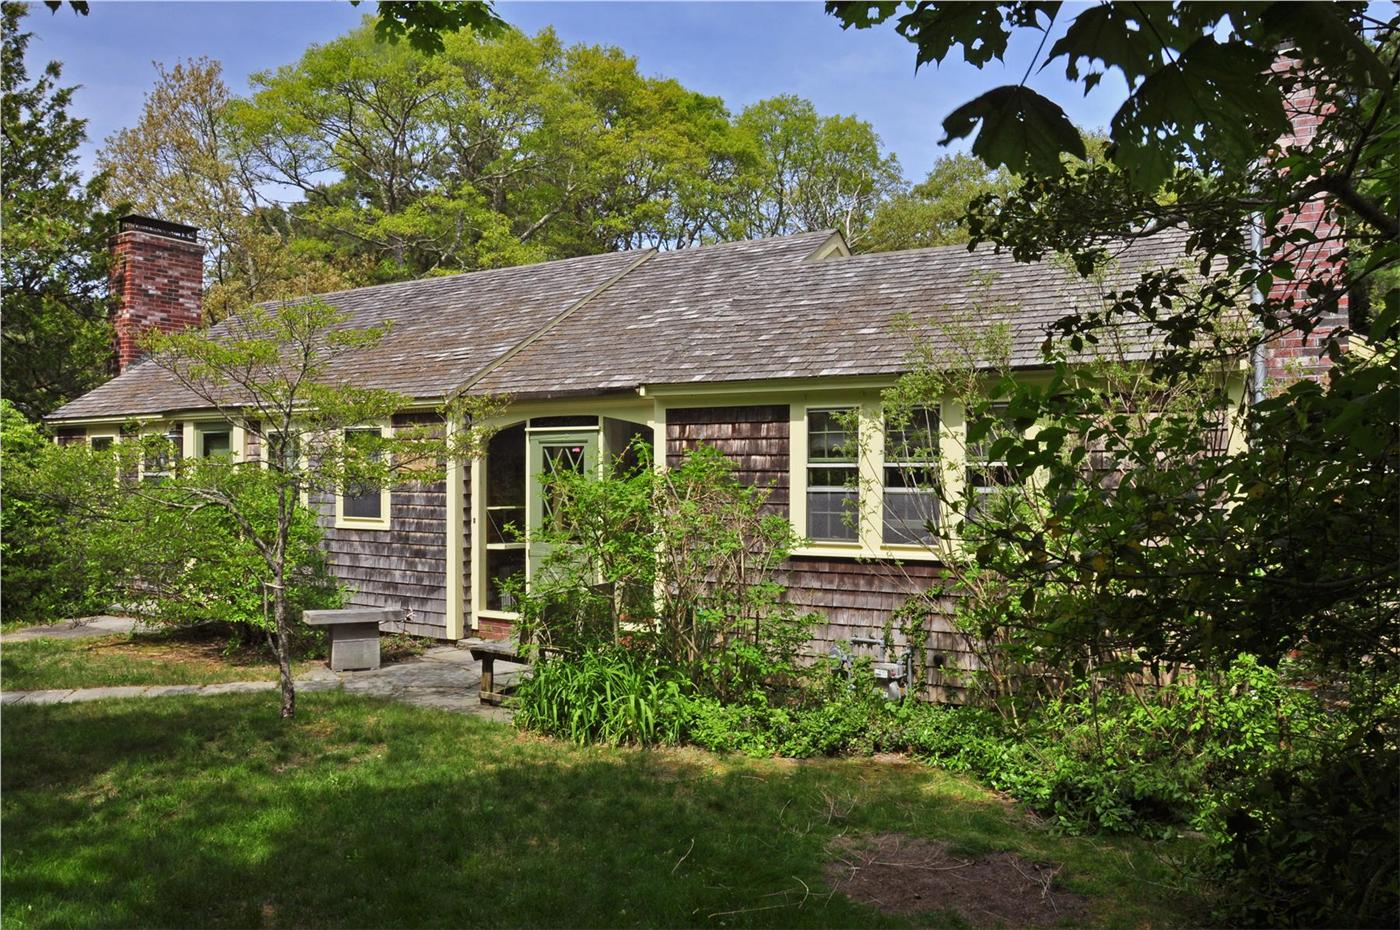 Yarmouth Vacation Rental Home In Cape Cod Ma 02664 0 2